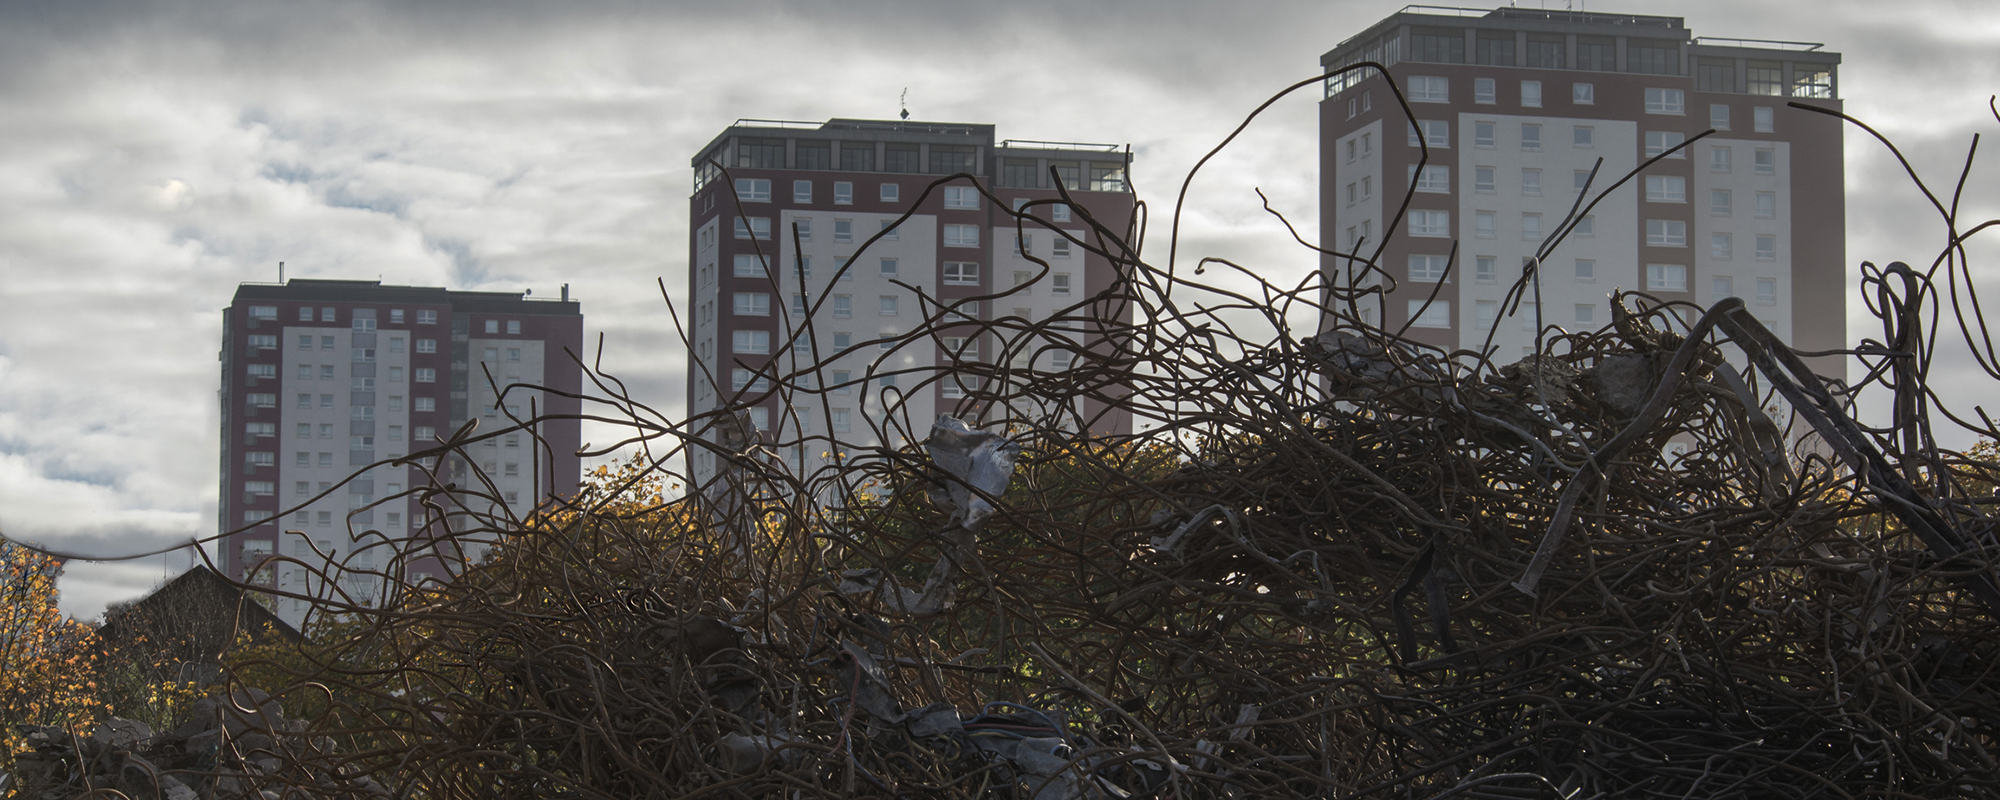 Glasgow: a tale of two cities